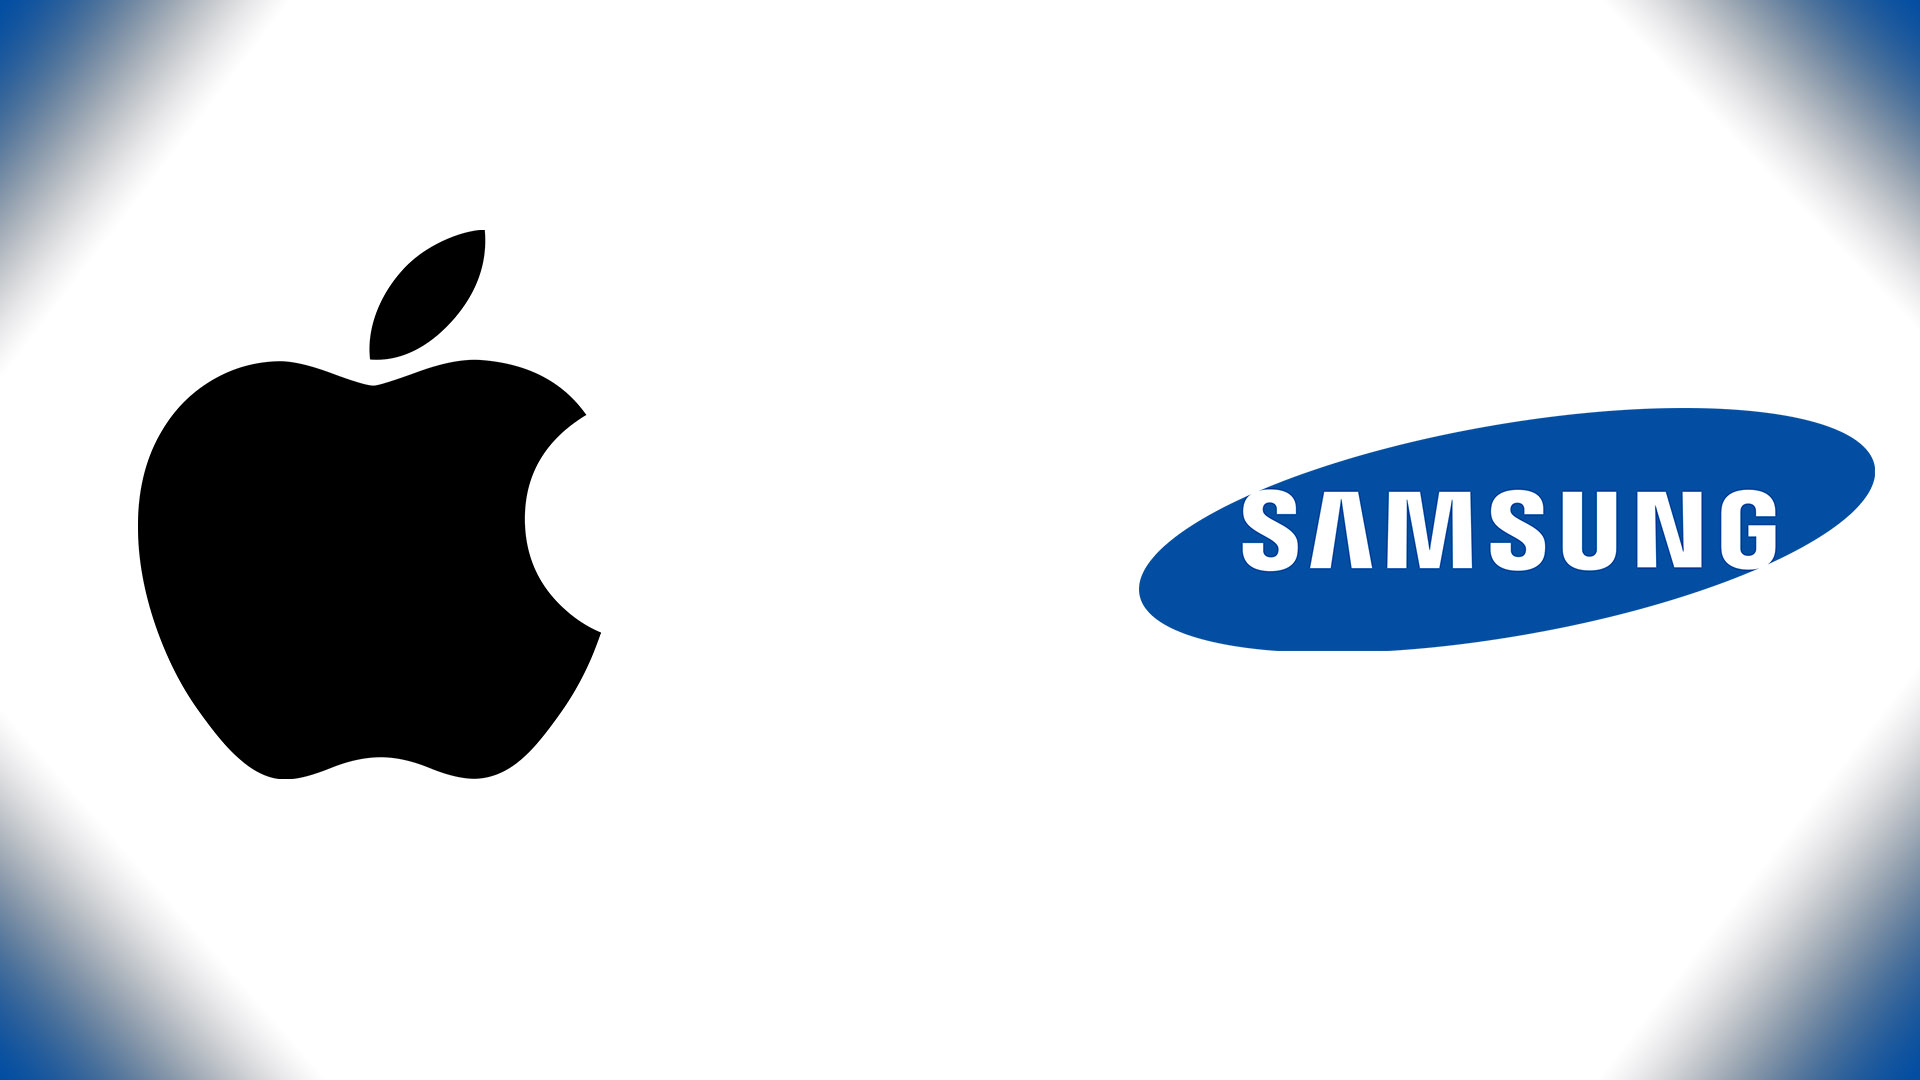 Apple And Samsung Phones Match Blow For Blow In Latest Customer